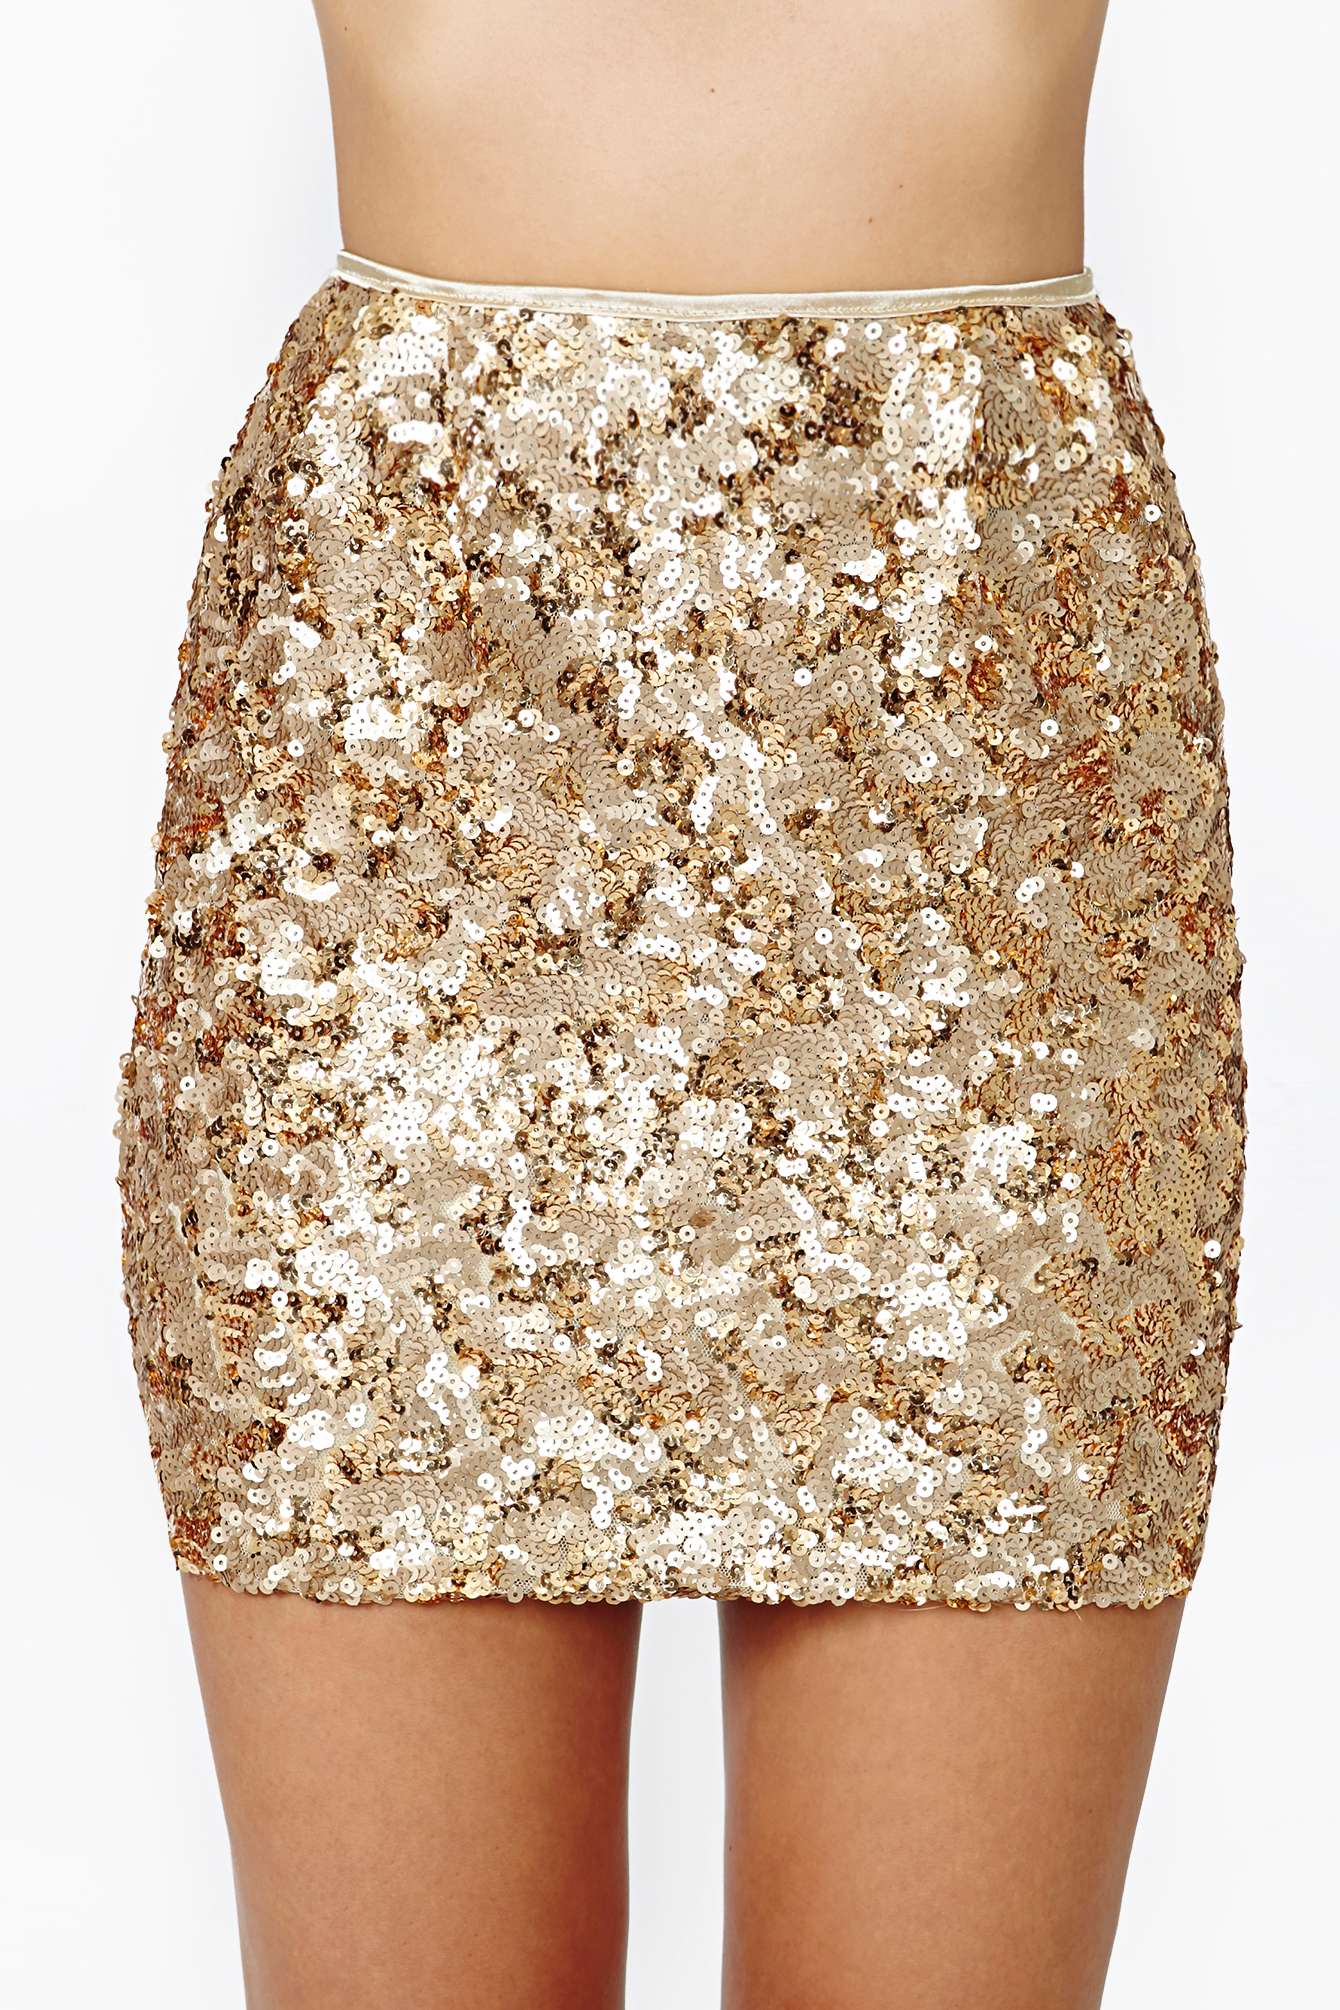 nasty-gal-gold-rare-london-gold-crush-sequin-skirt-product-4-14240260-827053654